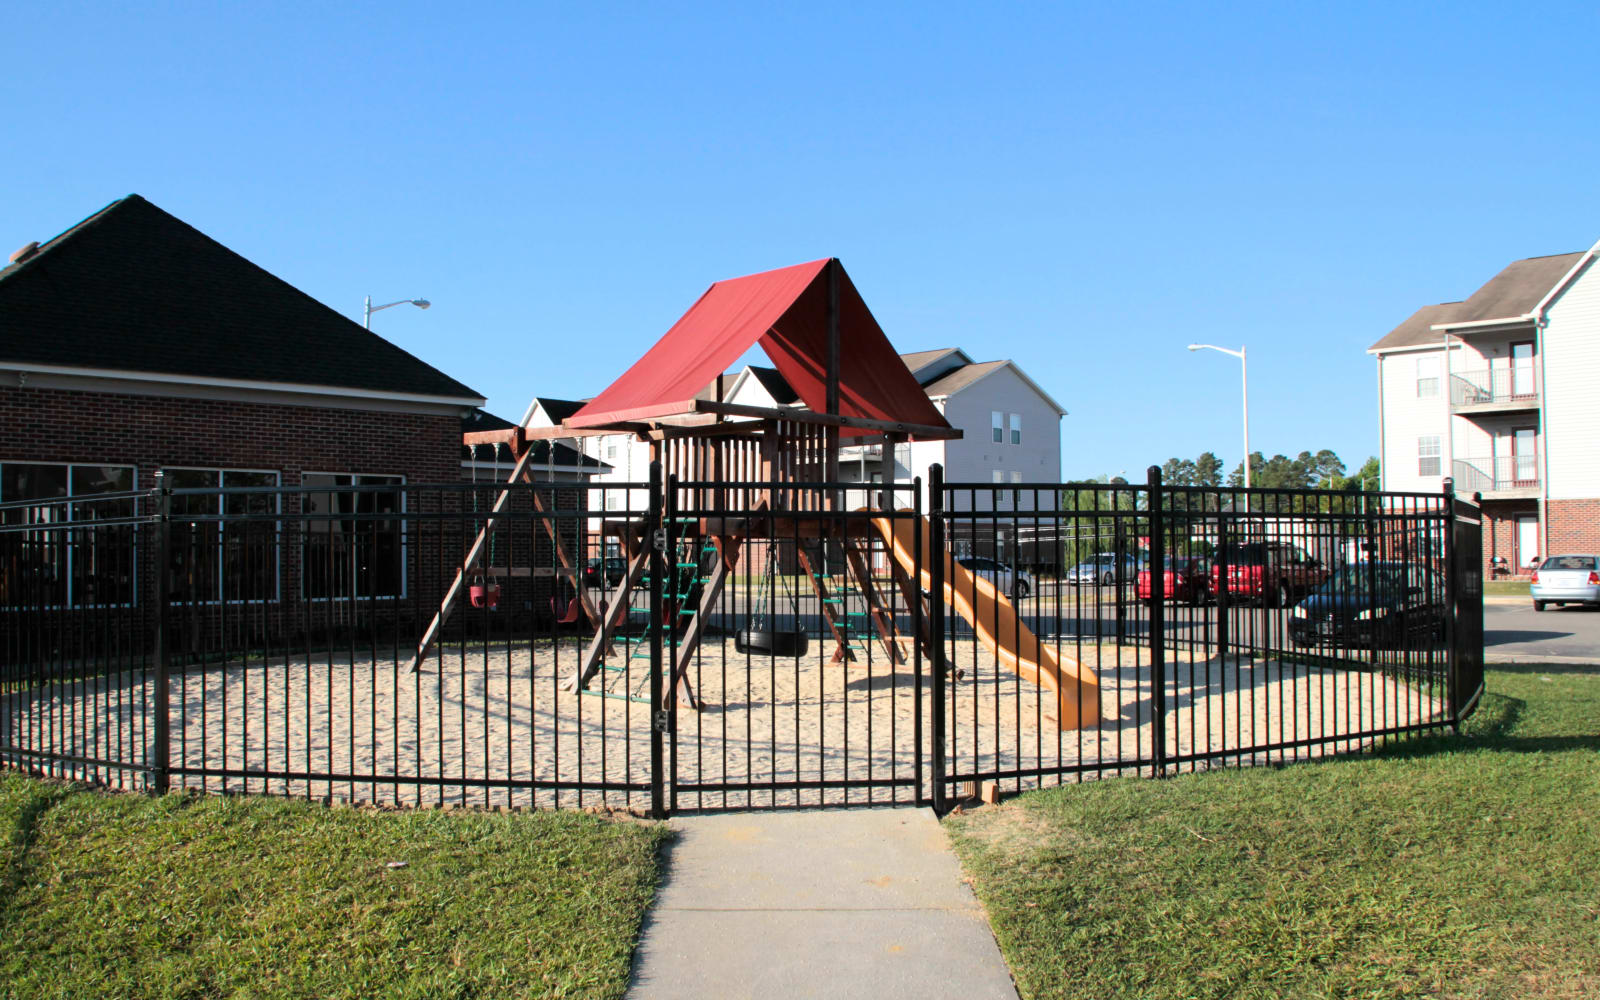 Brookstone Apartments in Fayetteville, North Carolina, offers a playgrounds